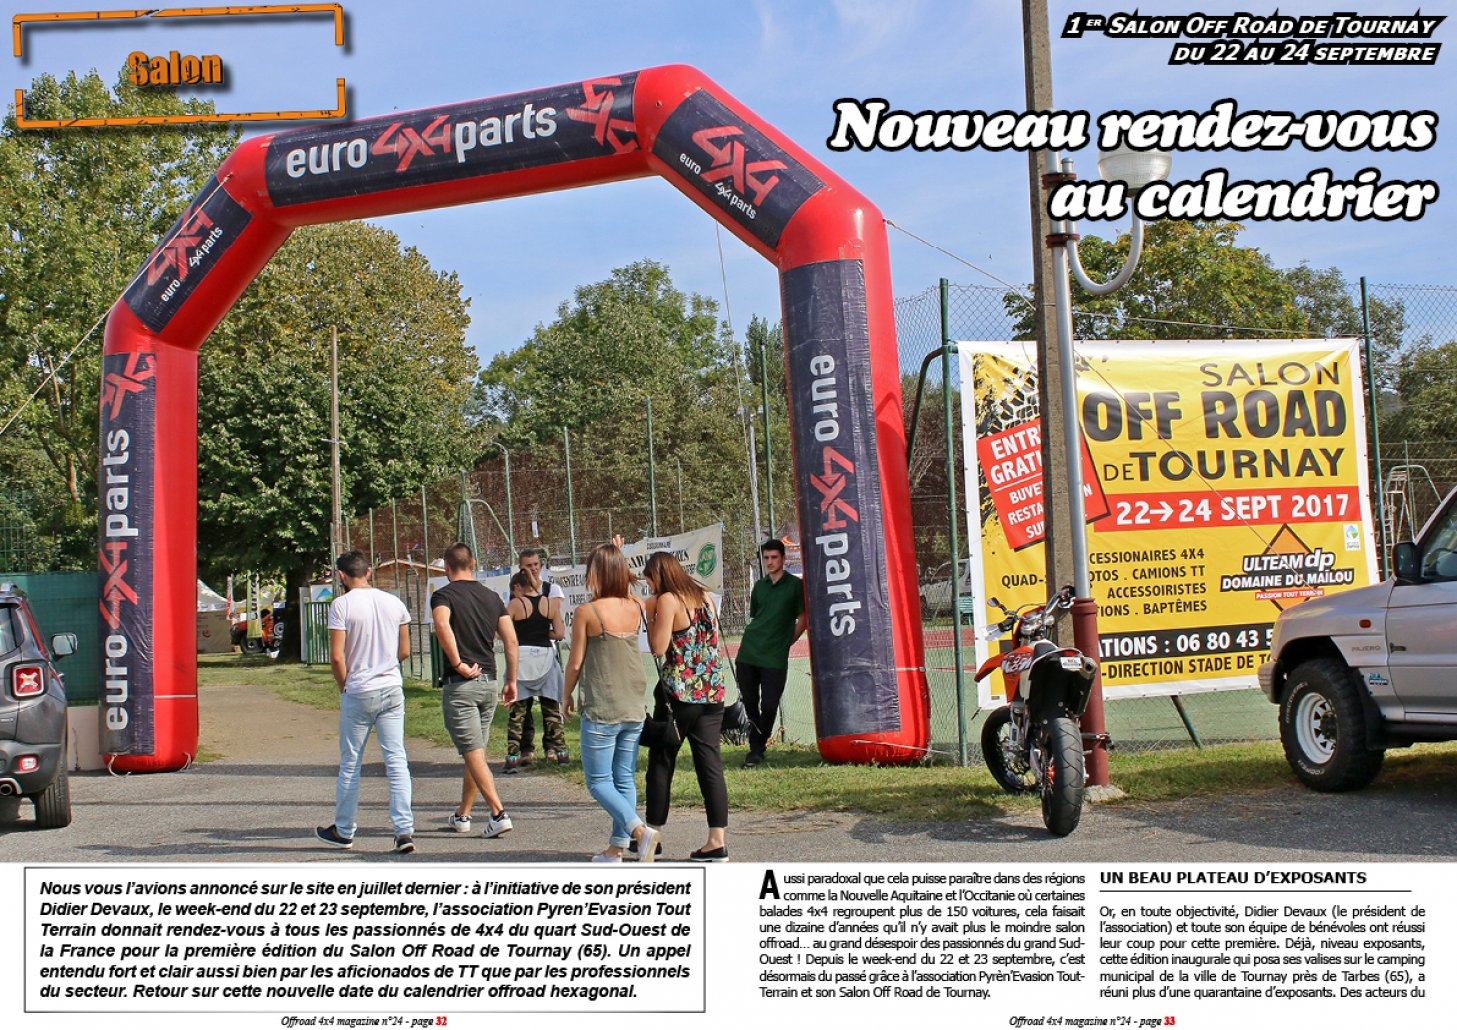 Le Salon Off Road de Tournay 2017